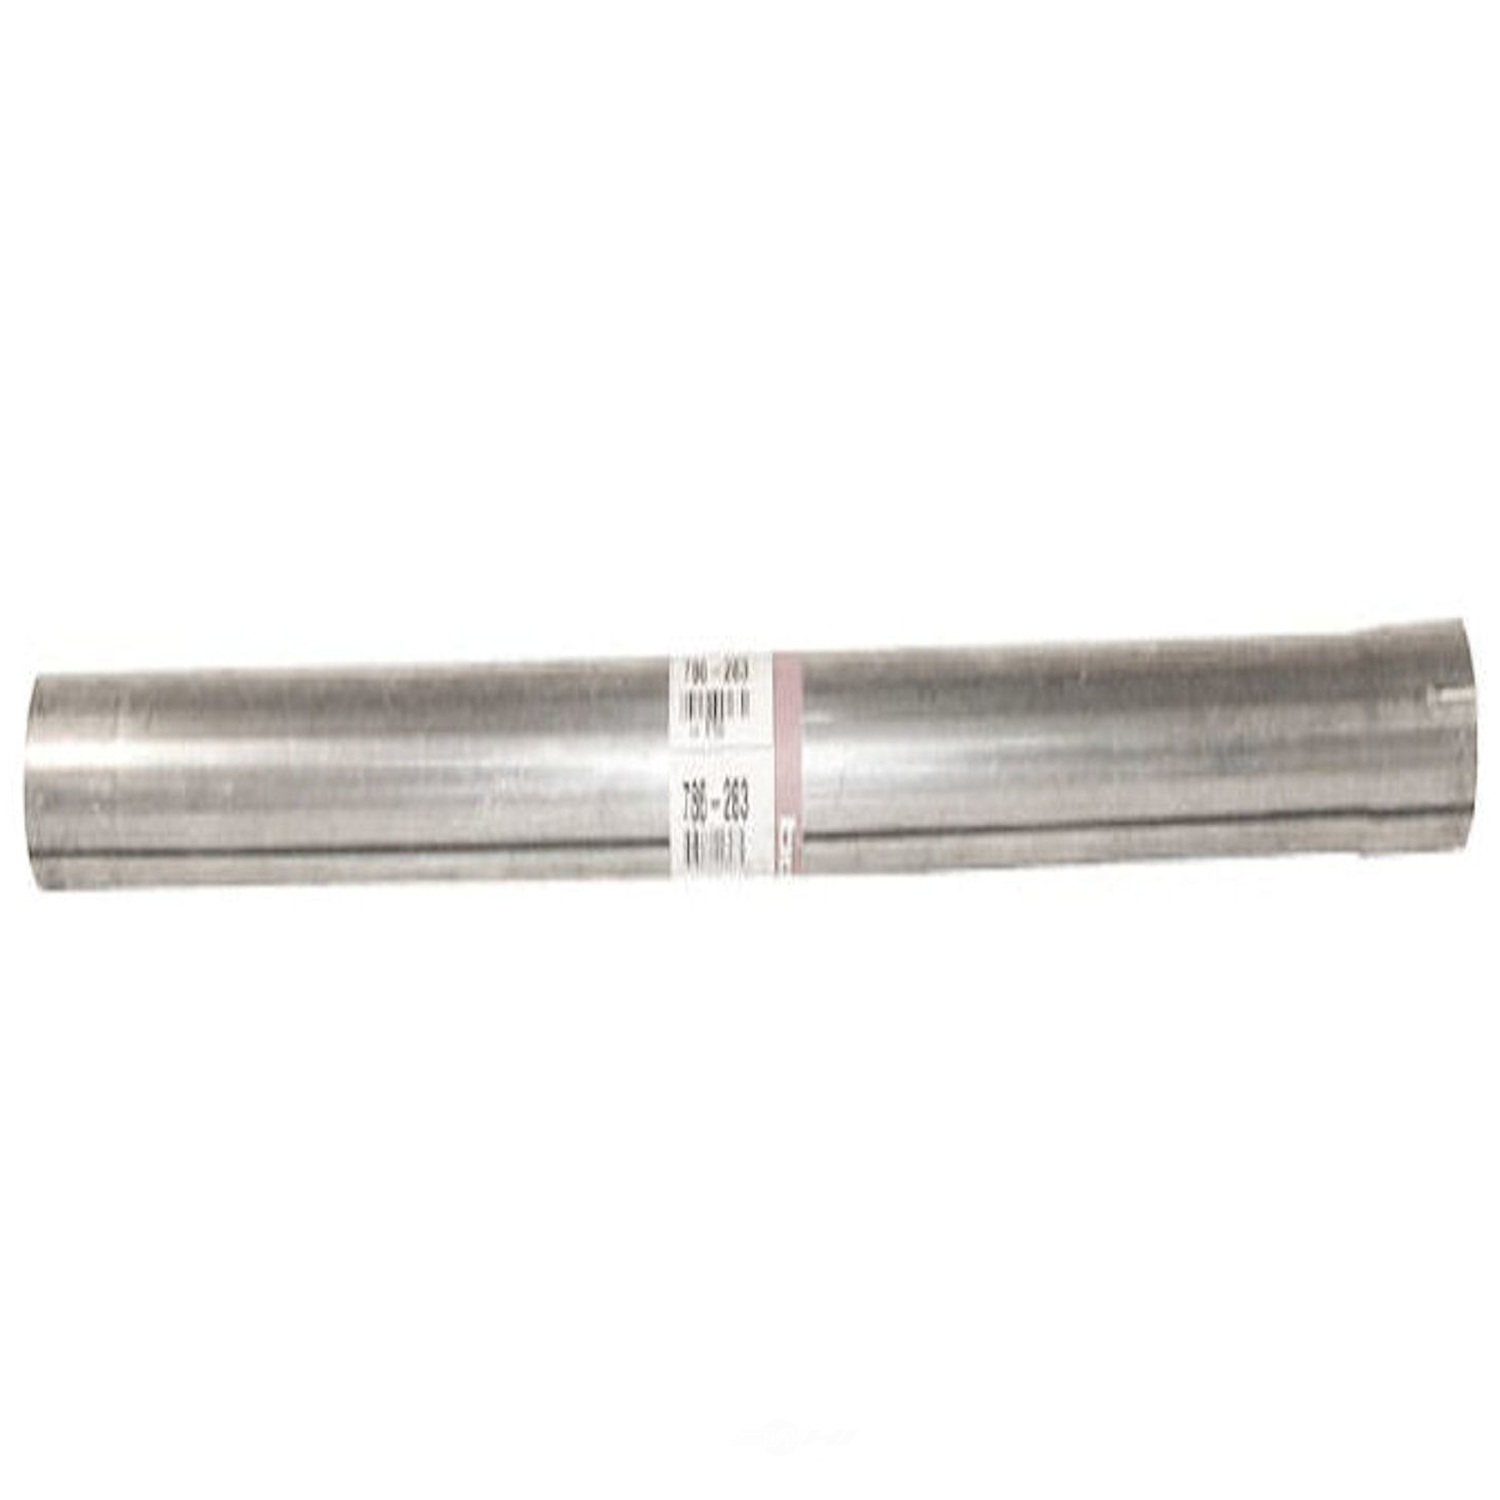 BOSAL EXHAUST - Exhaust Pipe - BSL 786-283